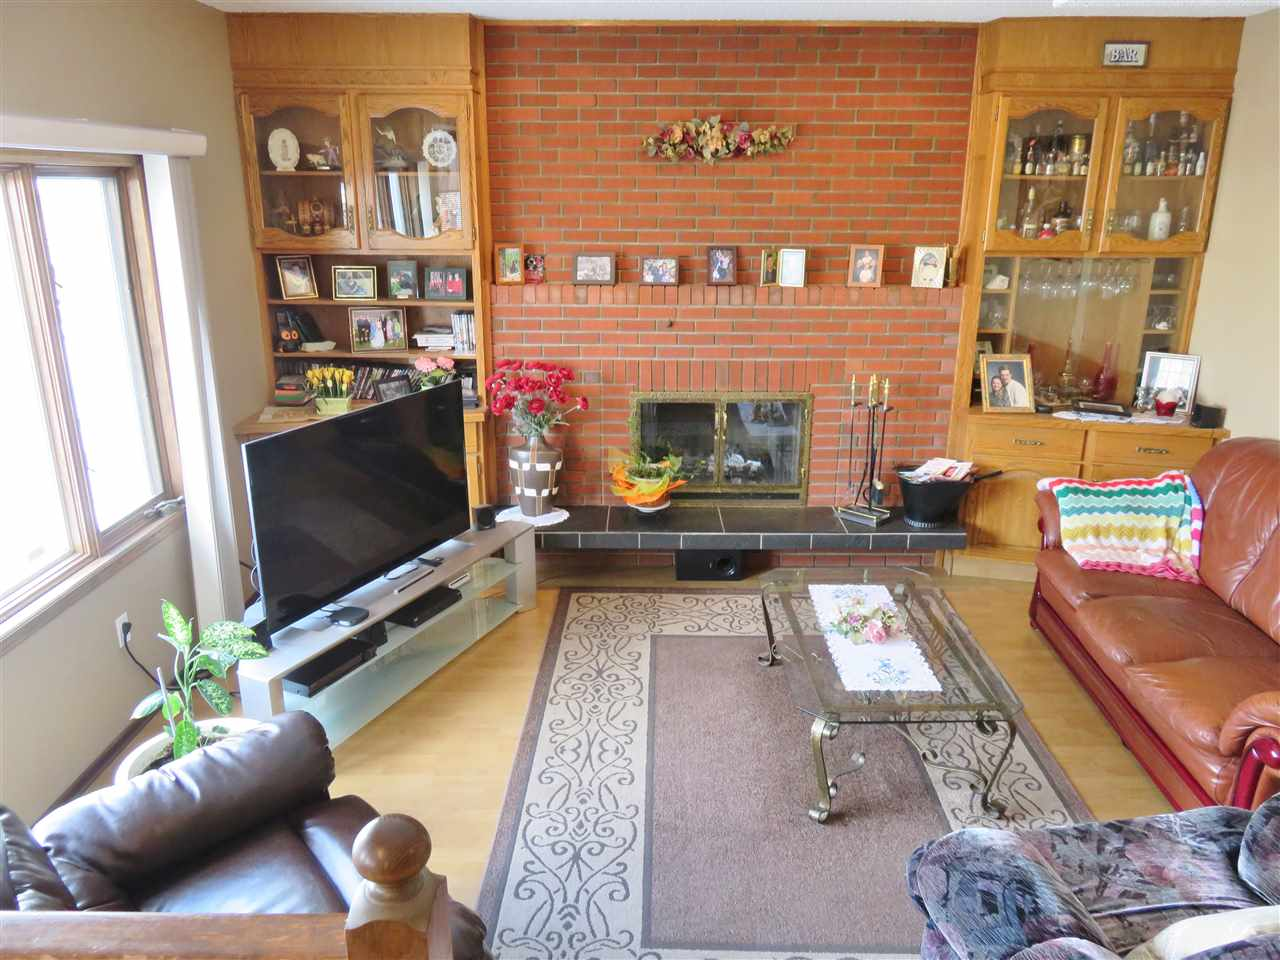 View of the Sunken Family Room! Note the Brick Wood Burning Fireplace too! :)